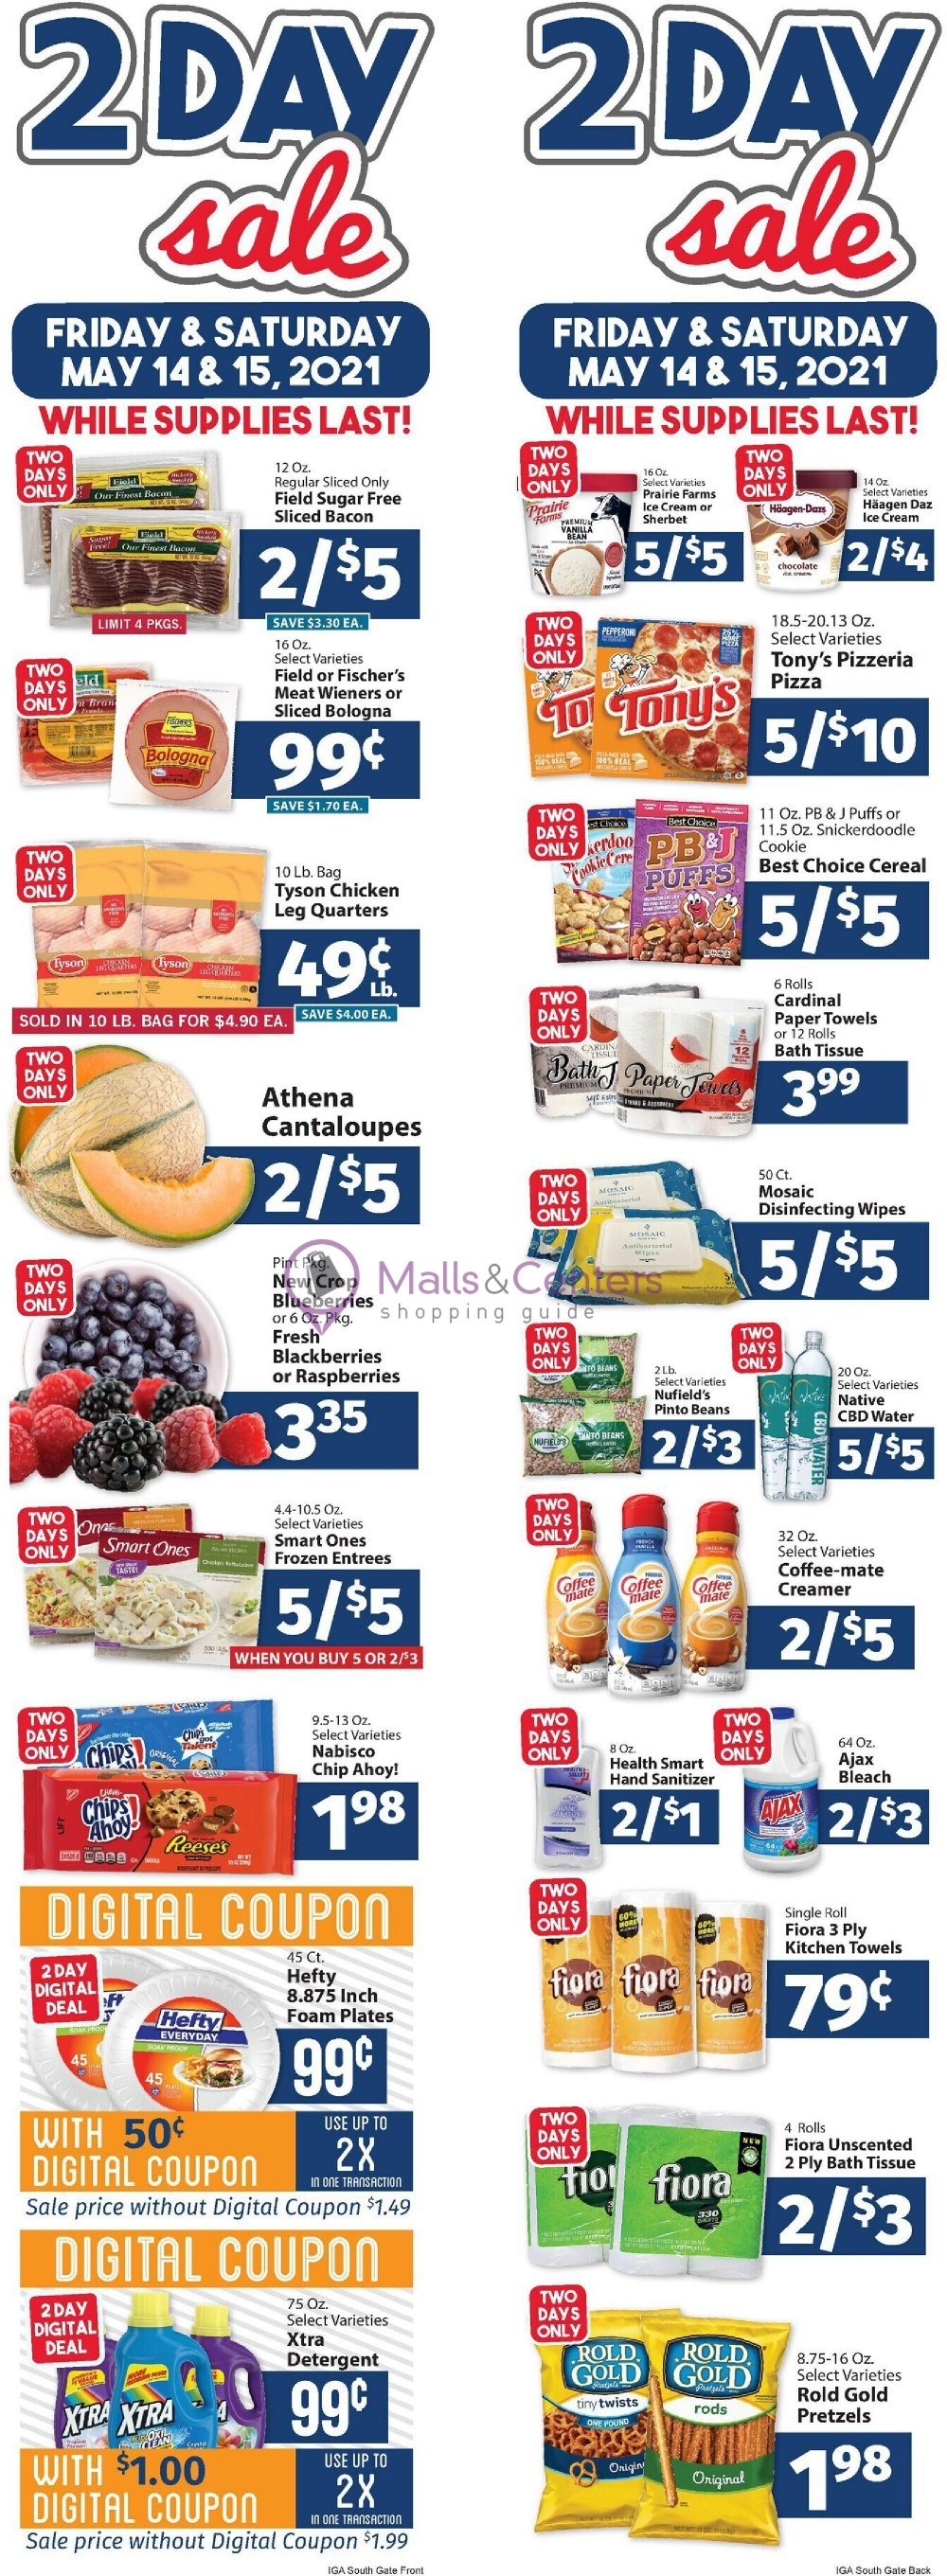 weekly ads IGA - page 1 - mallscenters.com